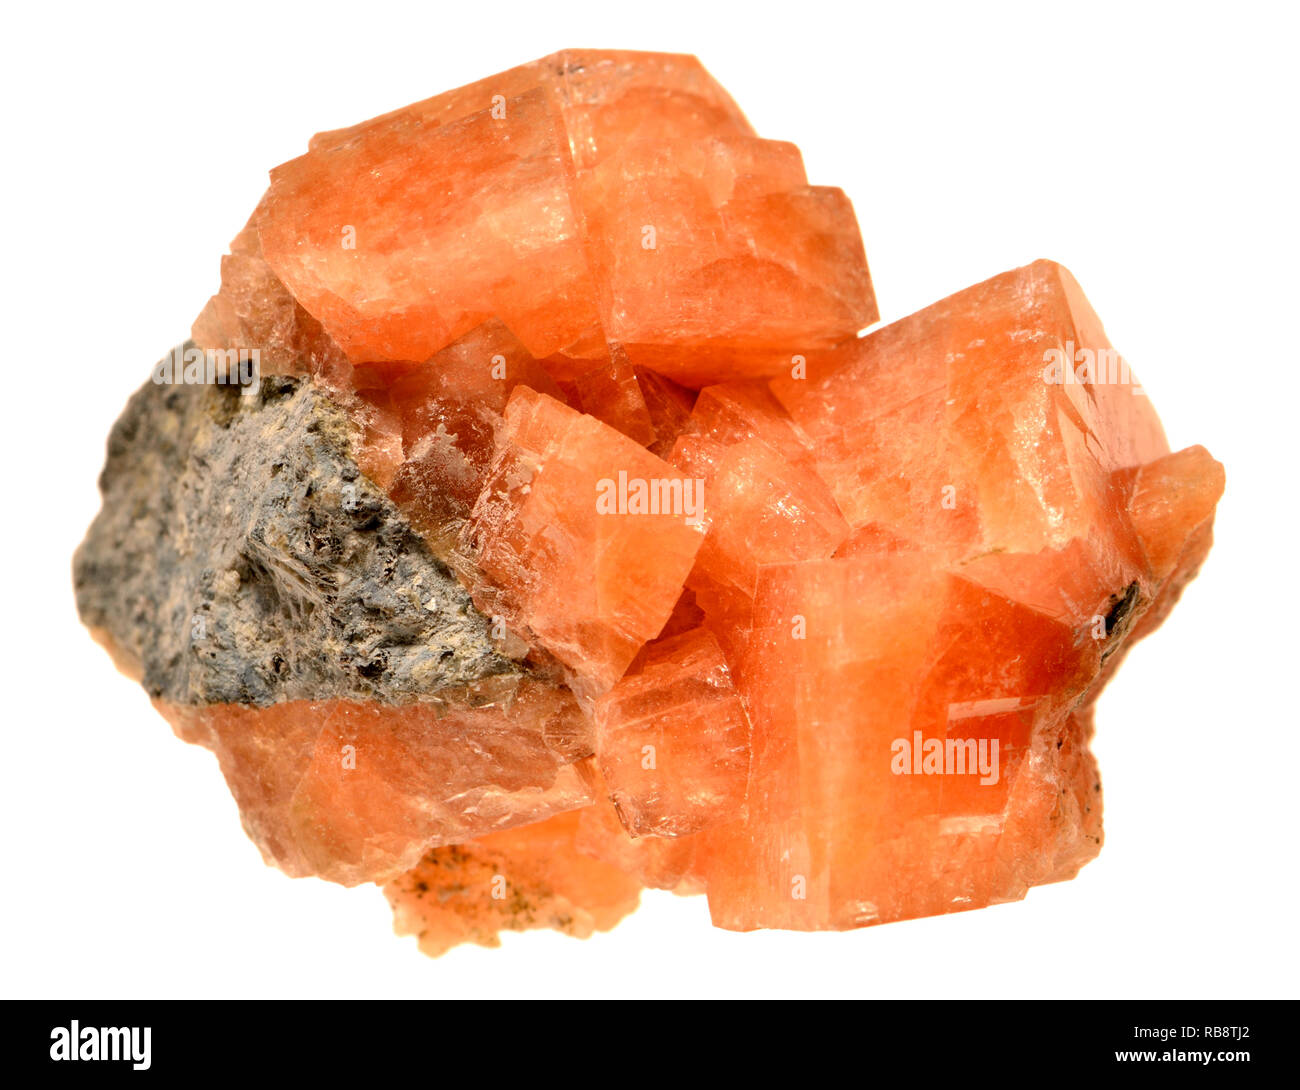 Chabazite crystals - tectosilicate mineral of the zeolite group - Stock Image